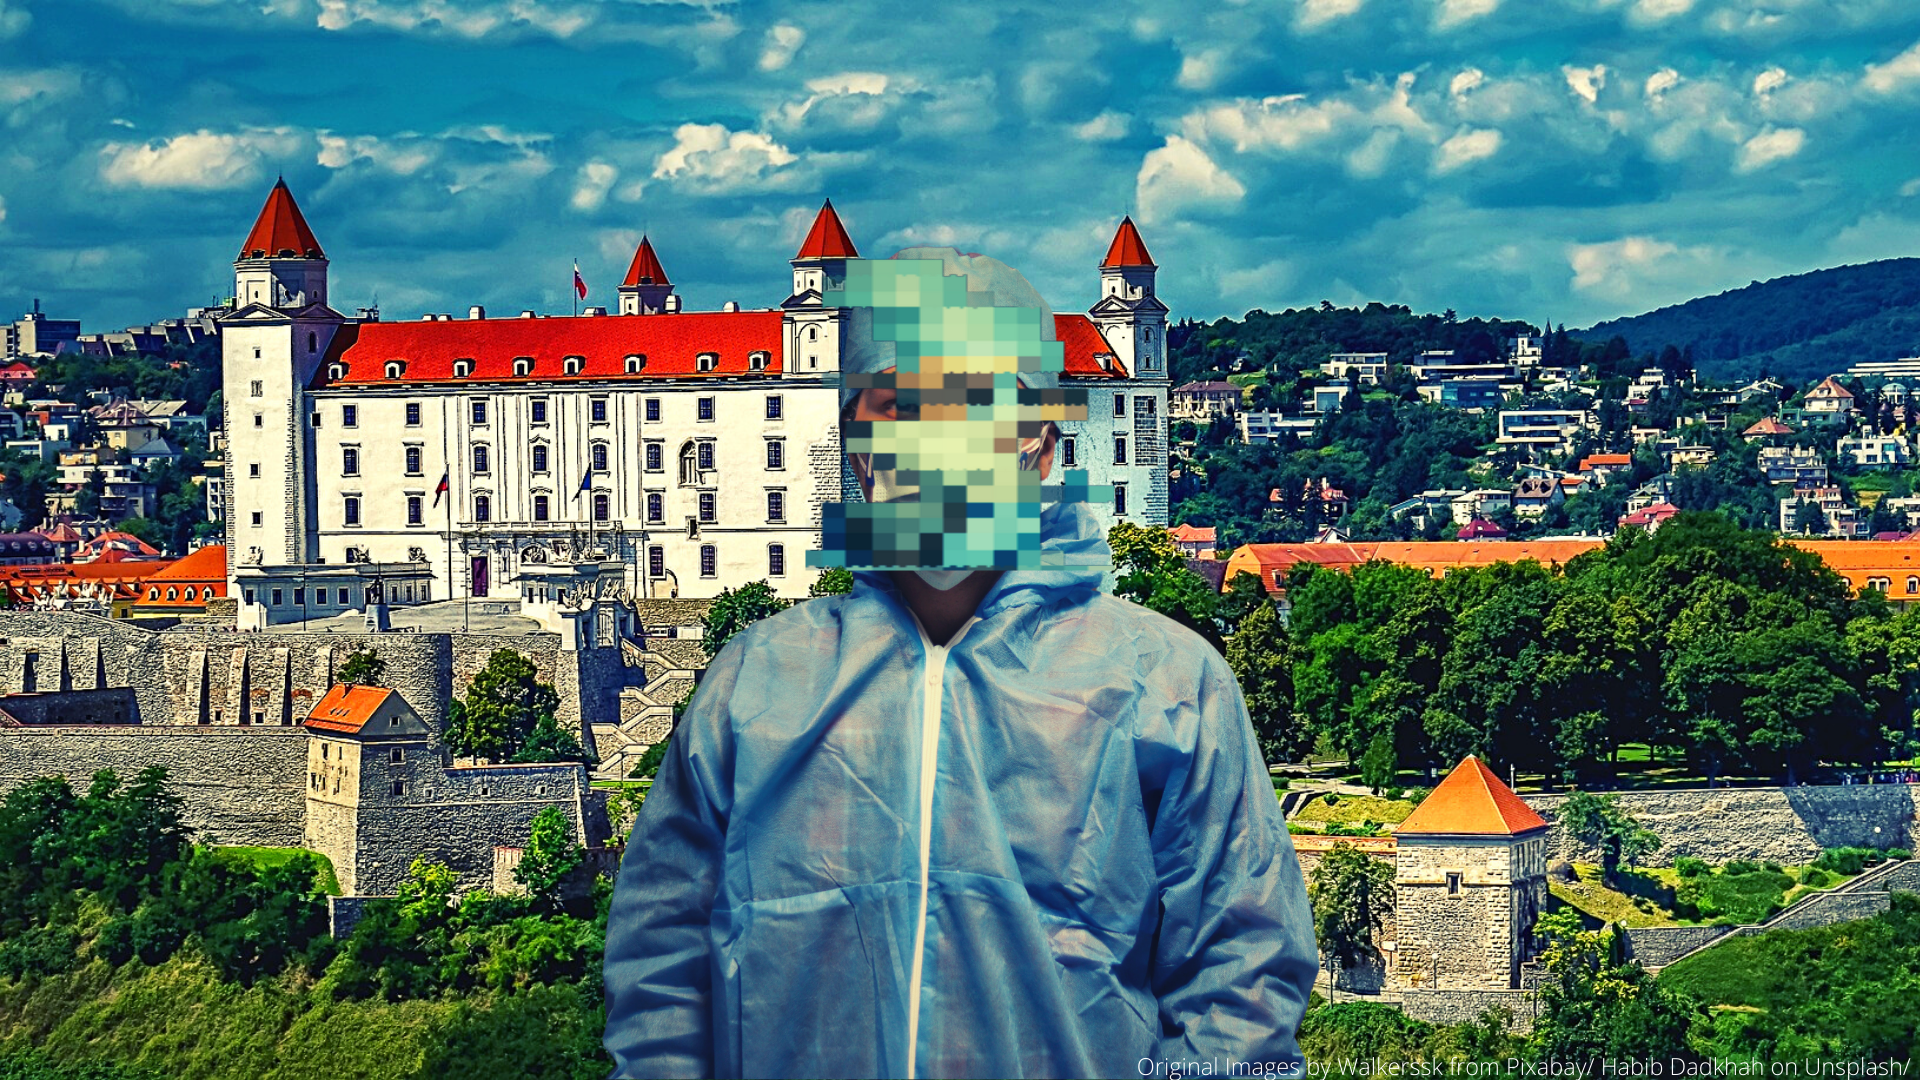 Original Images for feature by Walkerssk from Pixabay Habib Dadkhah on Unsplash portraying Bratislava and a healthcare worker